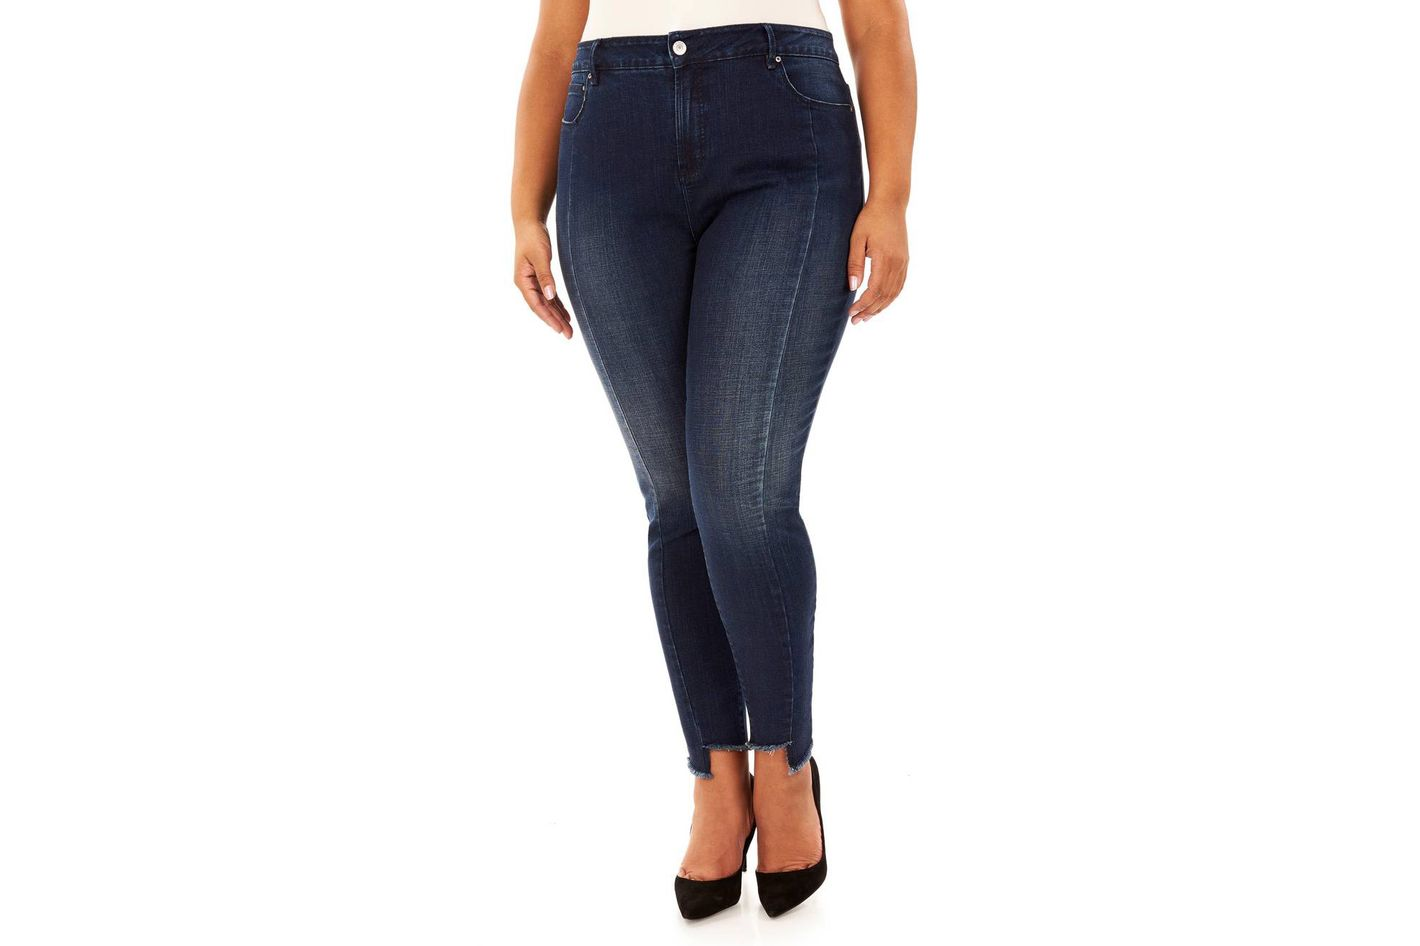 Rebel Wilson x Angels The Looker Jeans